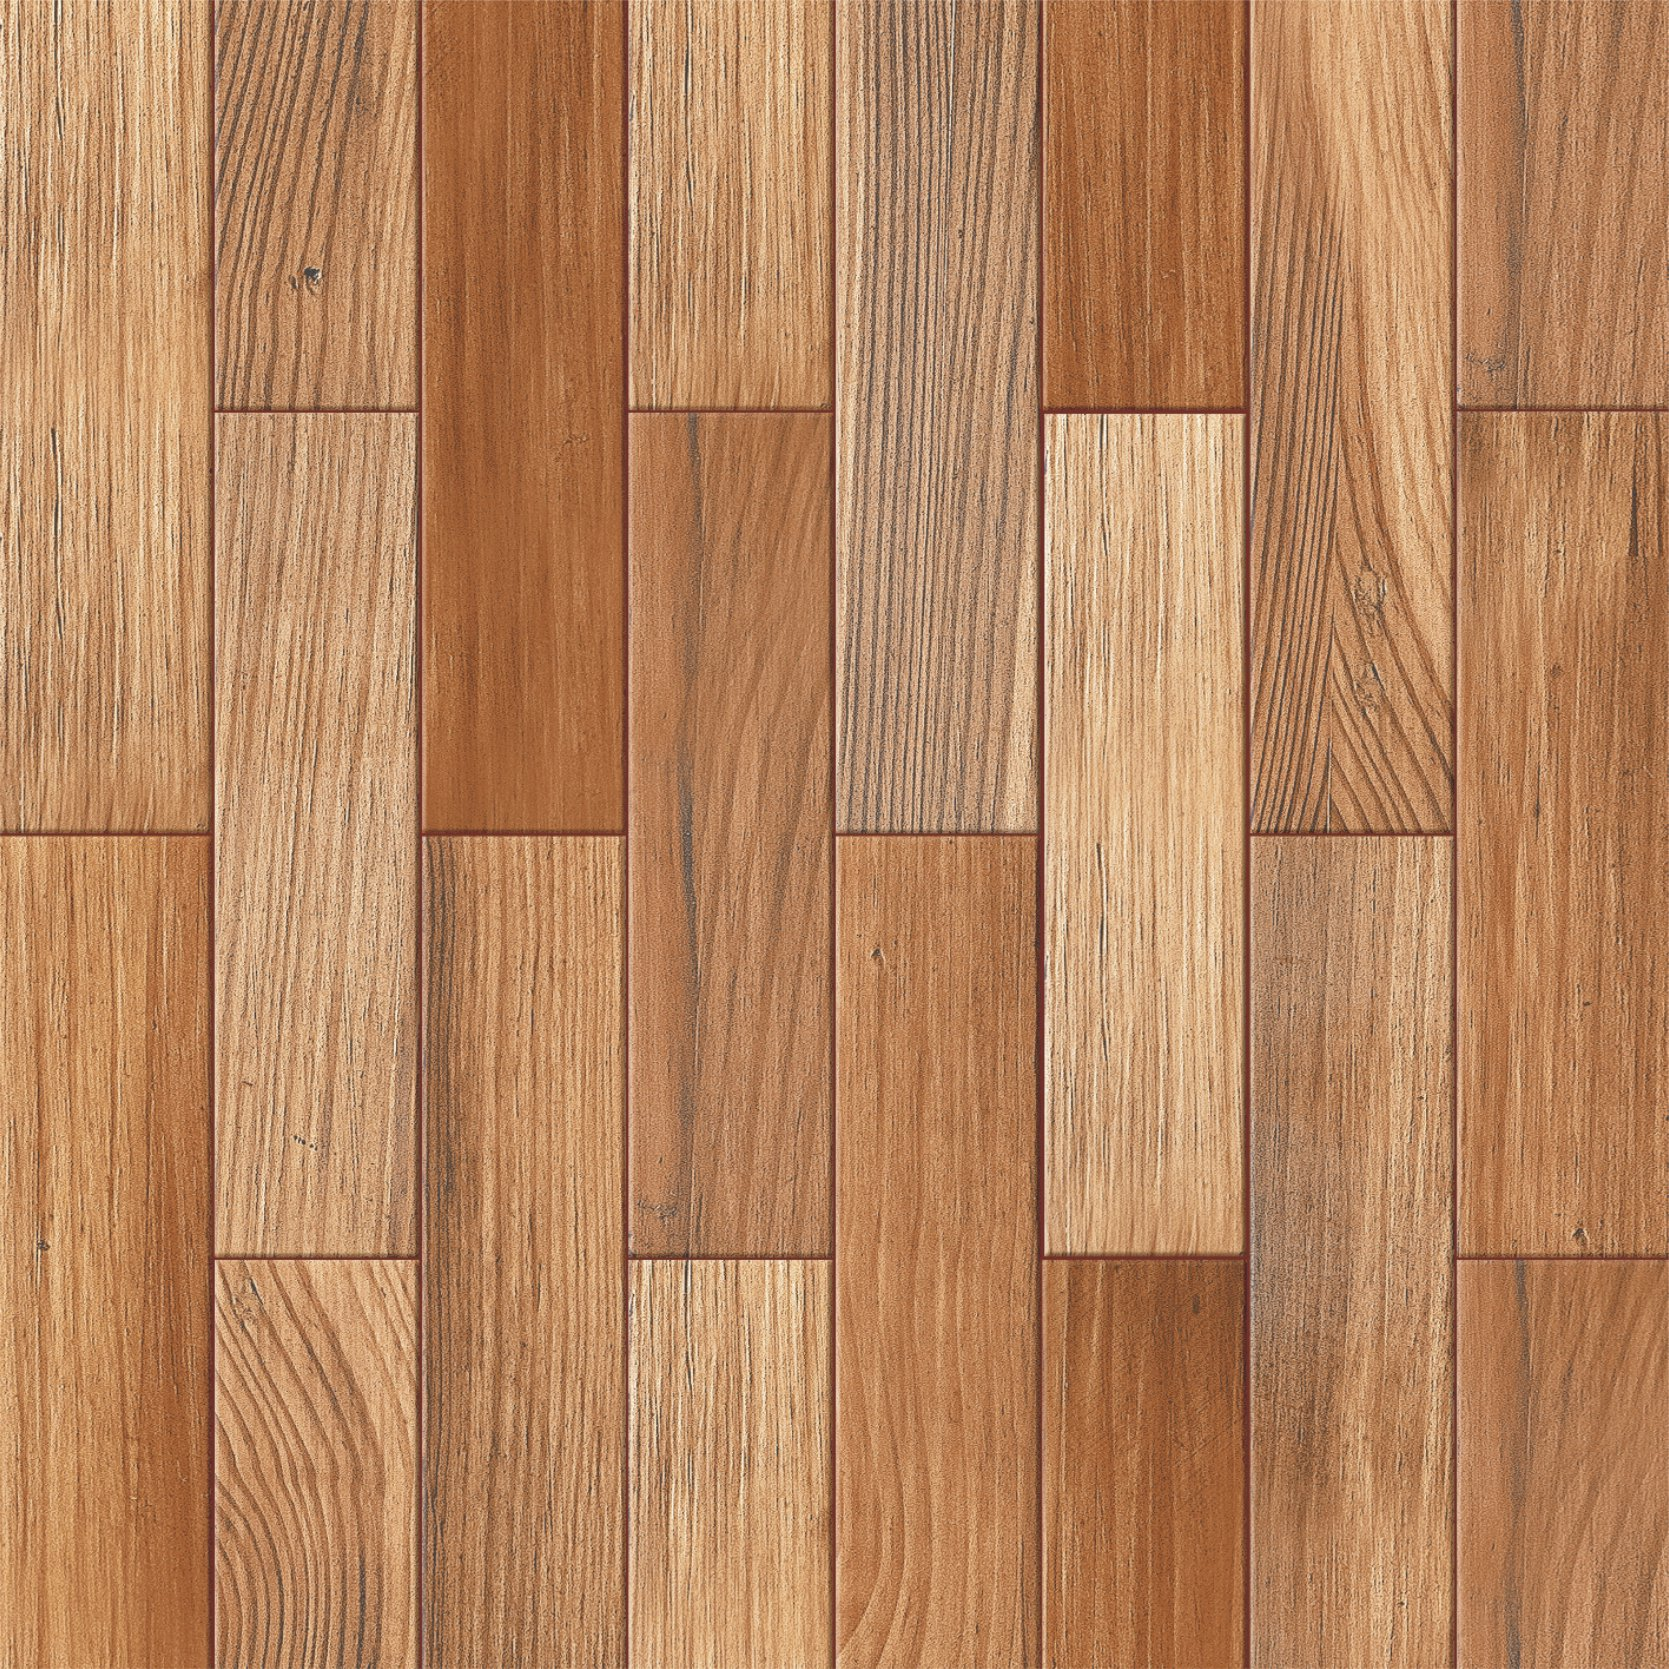 4MMX4MM Wood FLOOR TILES 4  Porcelain Tiles,Floor Tiles